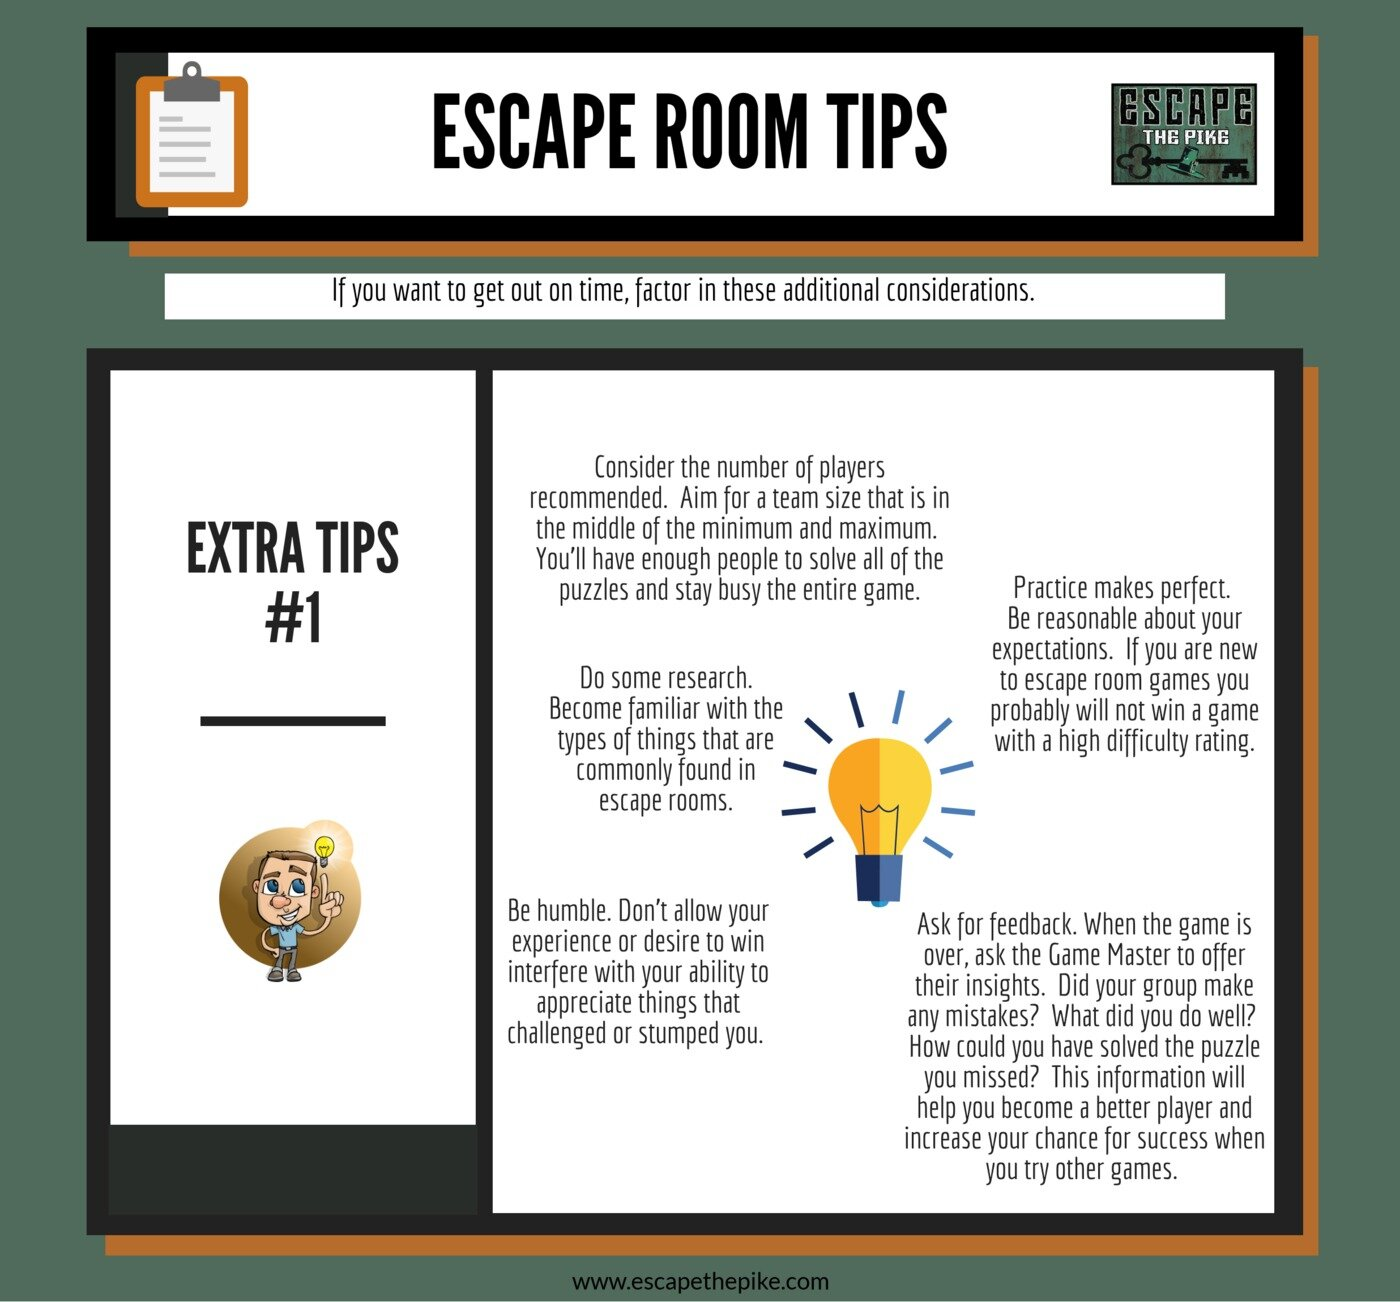 Tip #9- These are additional things to consider.